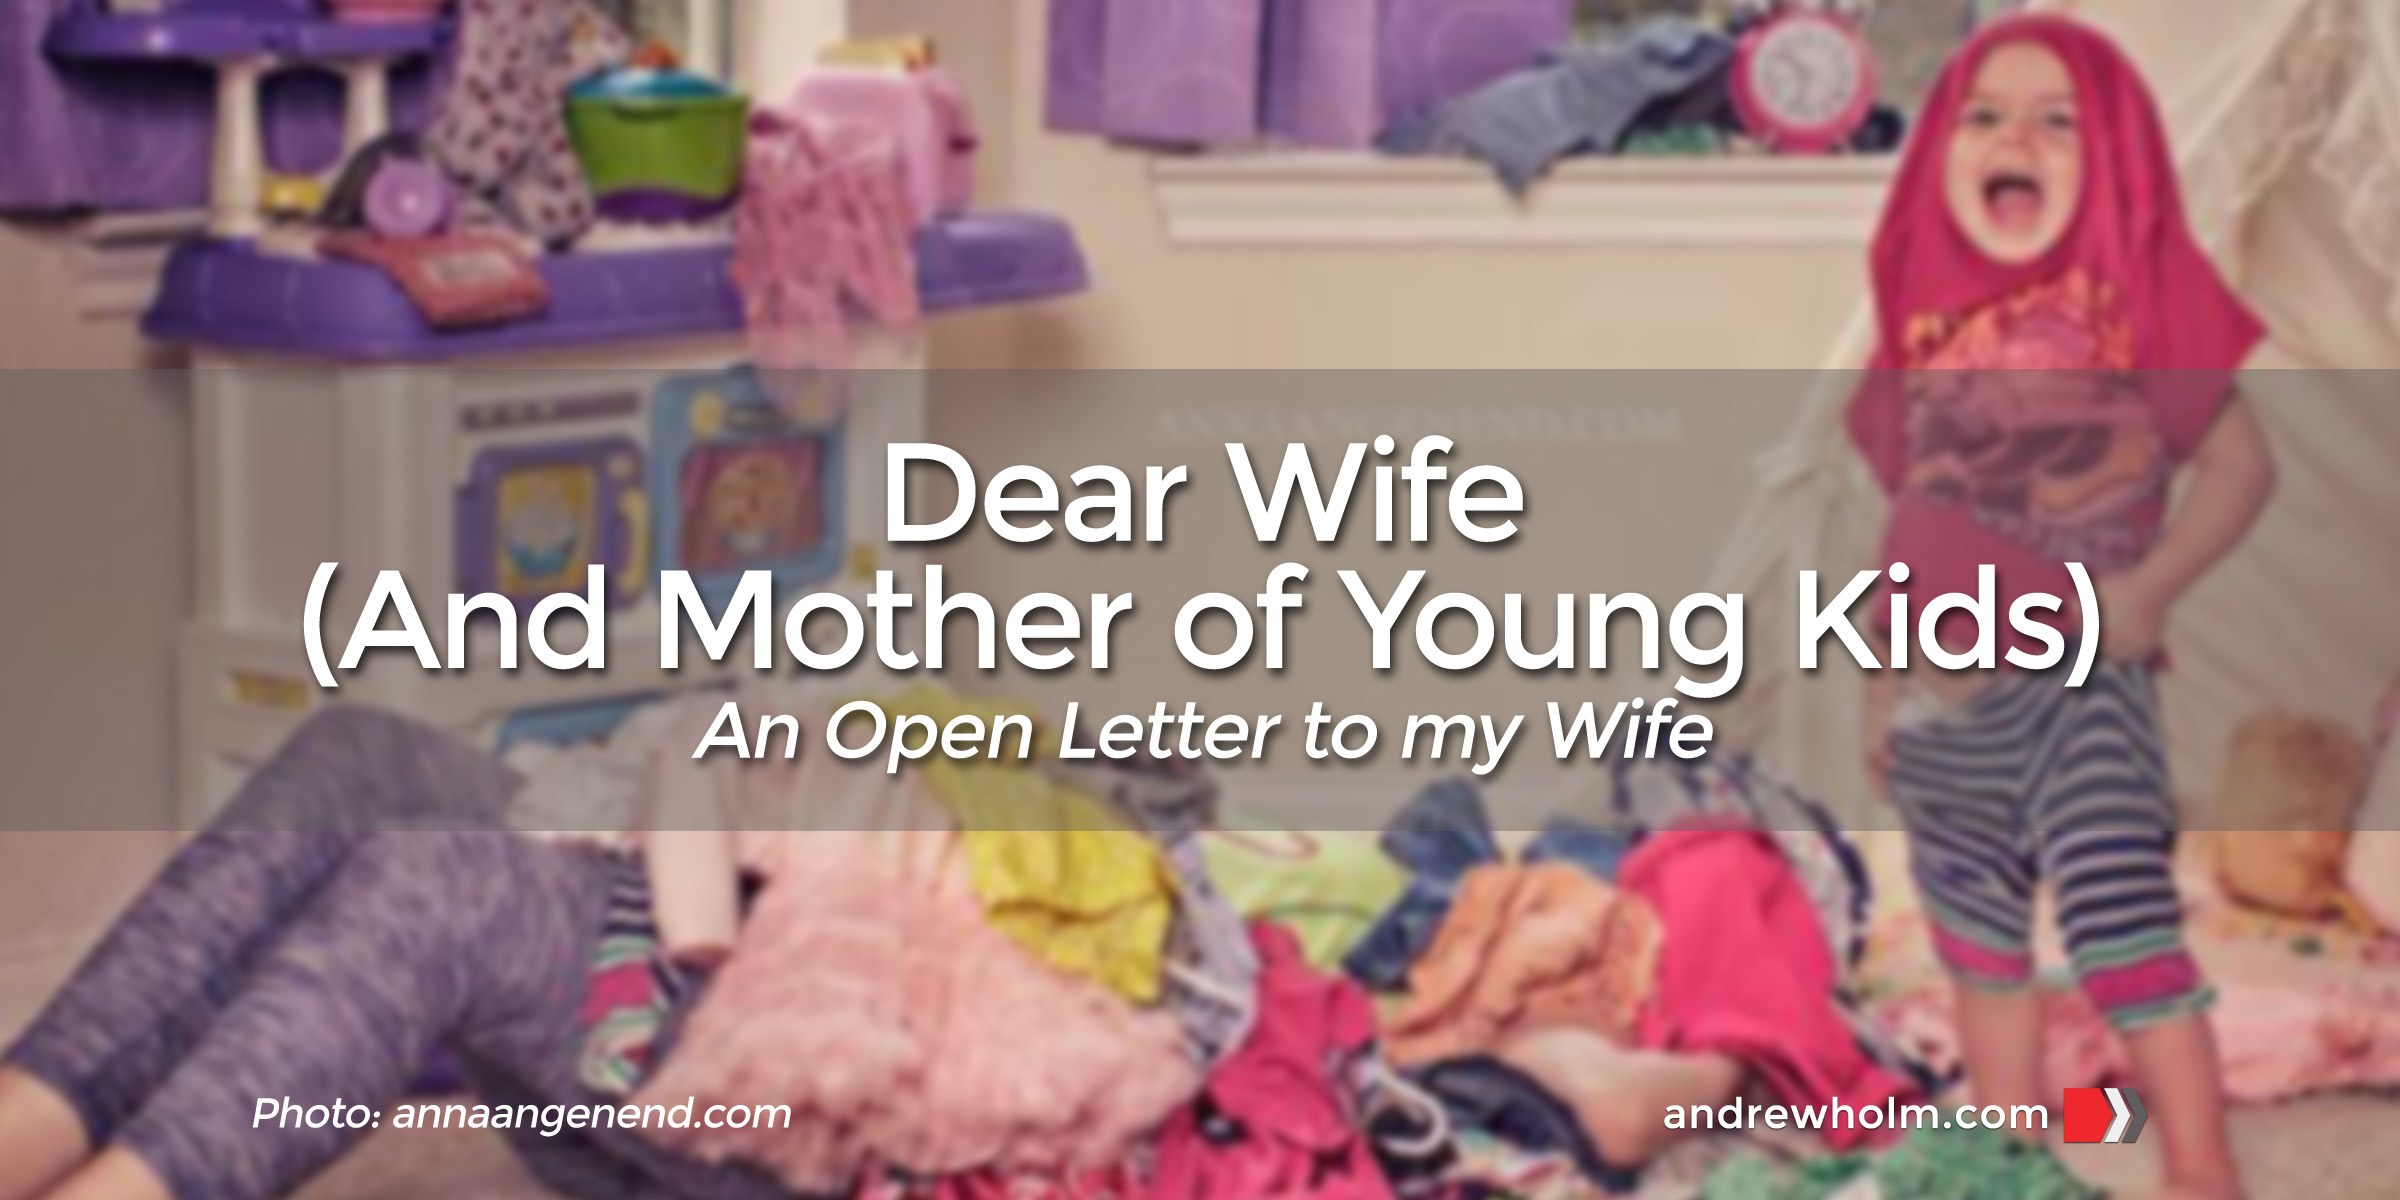 Dear Wife (And Mother of Young Kids)